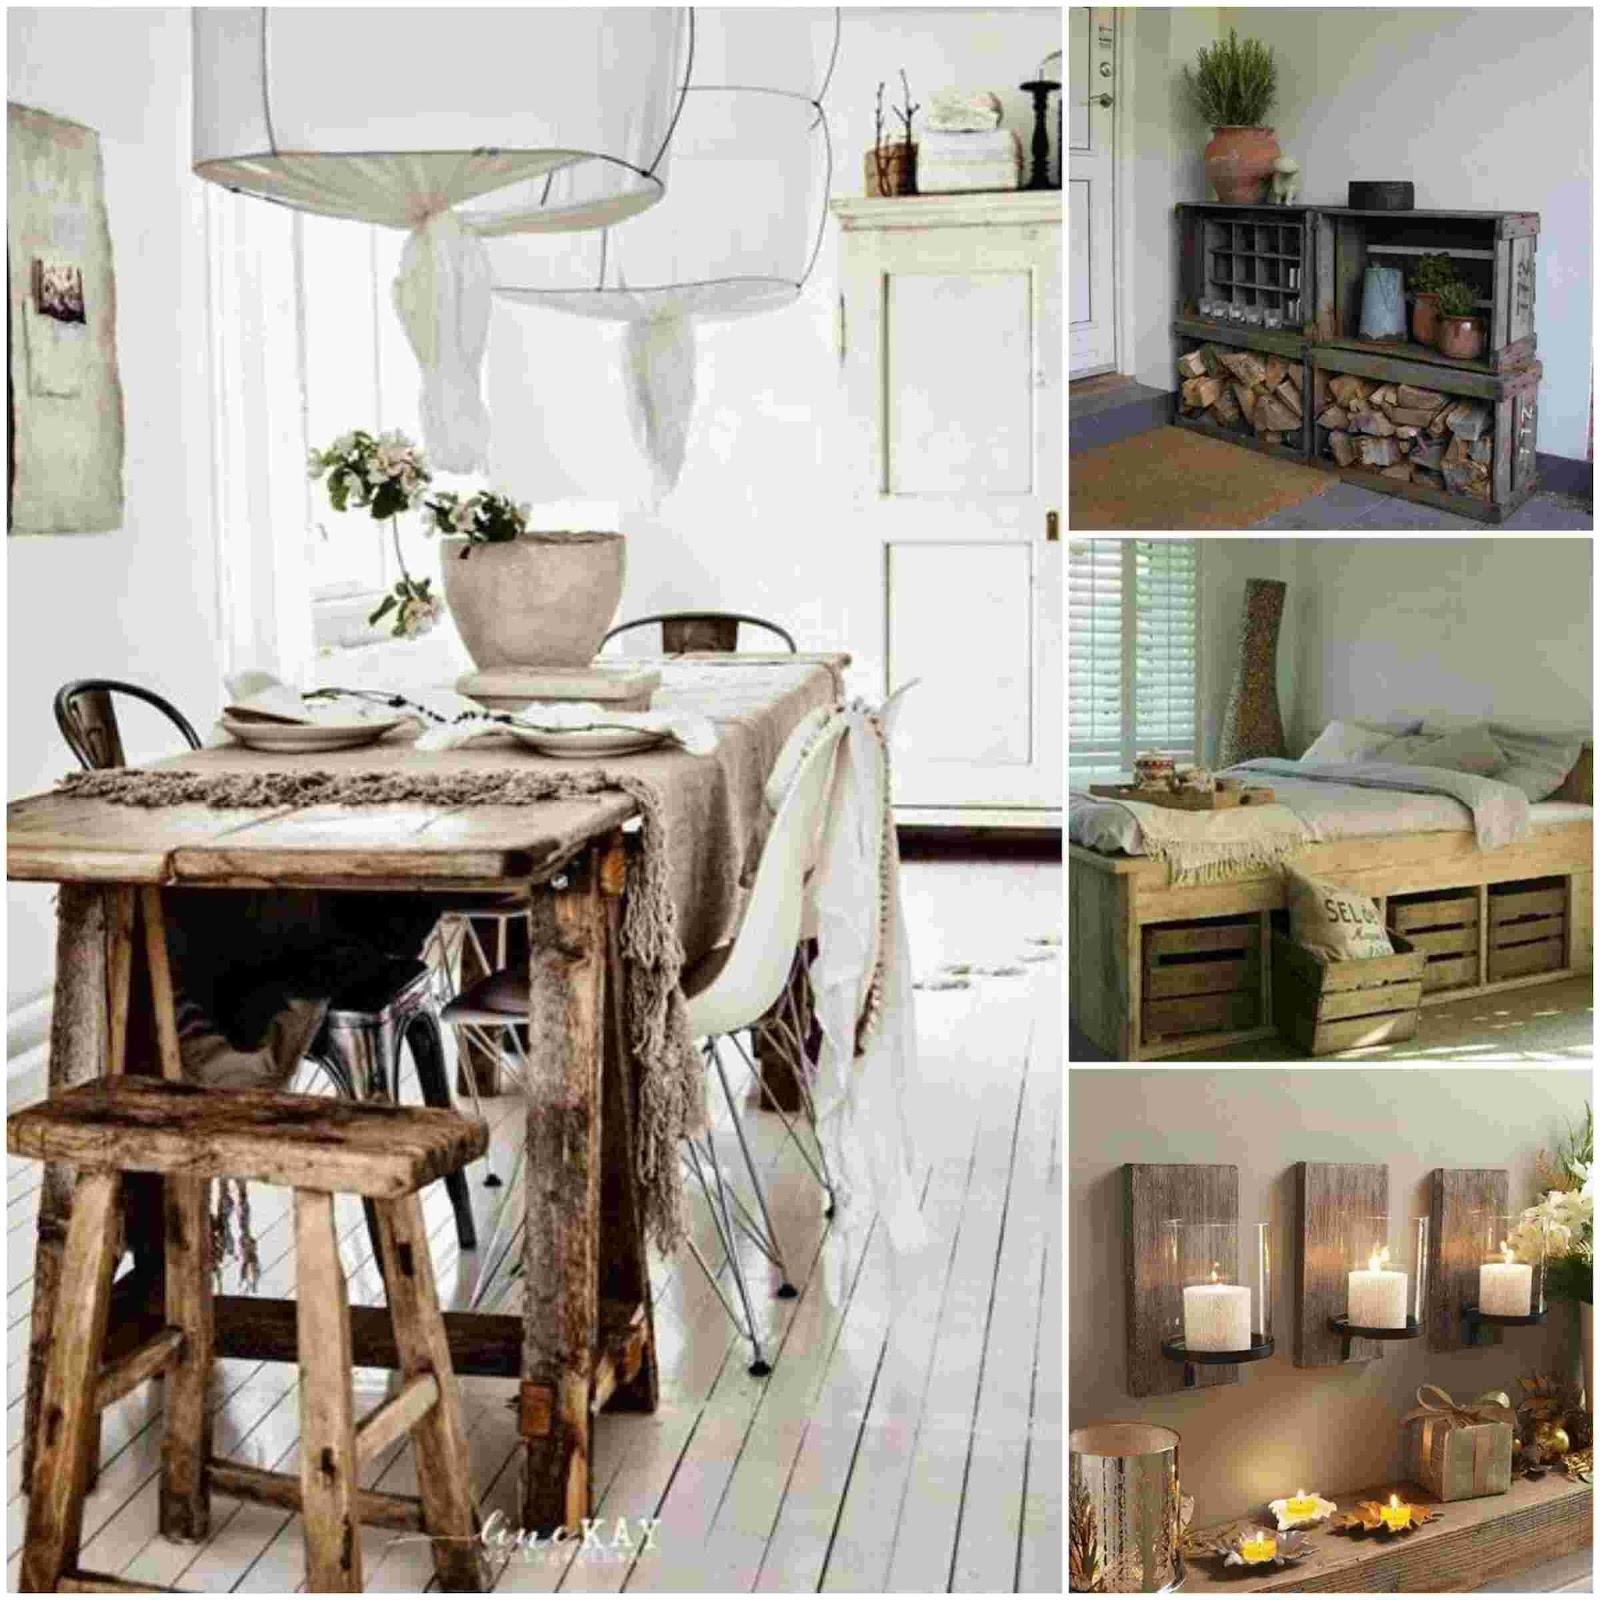 21 Rustic ideas to decorate your home - Diy Fun World